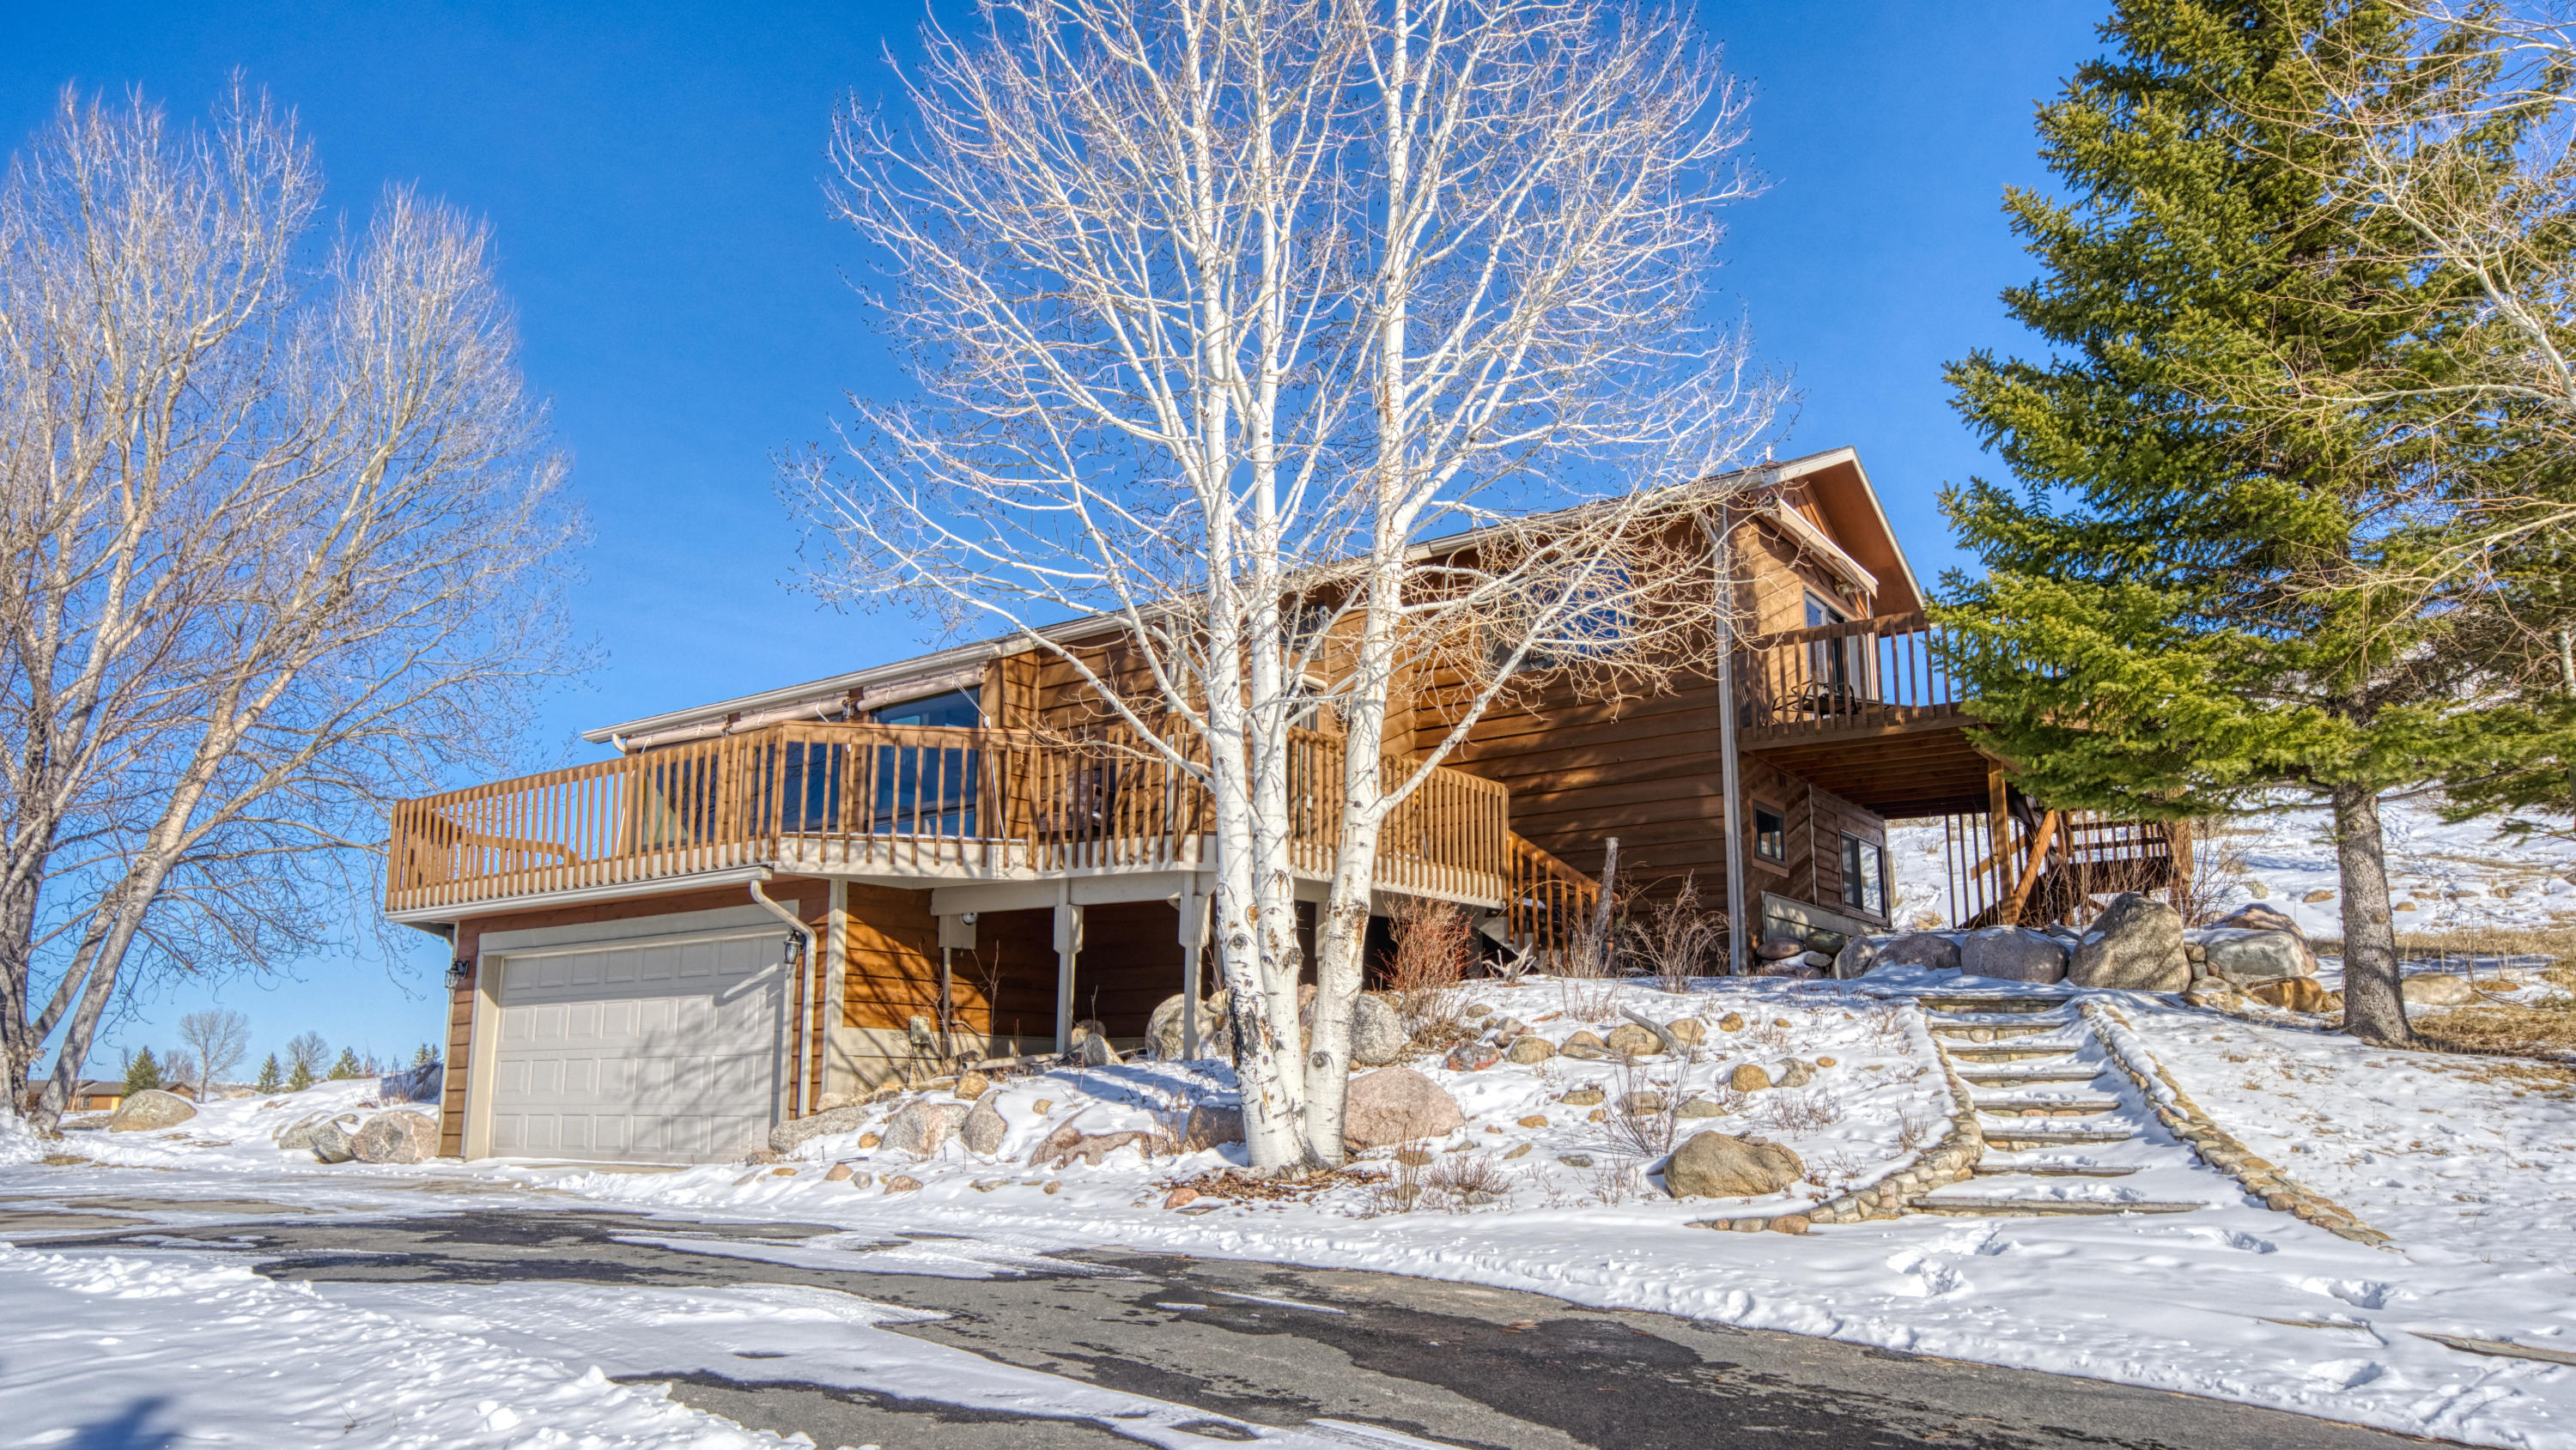 89 Canvasback Road, Sheridan, Wyoming 82801, 3 Bedrooms Bedrooms, ,3 BathroomsBathrooms,Residential,For Sale,Canvasback,19-198